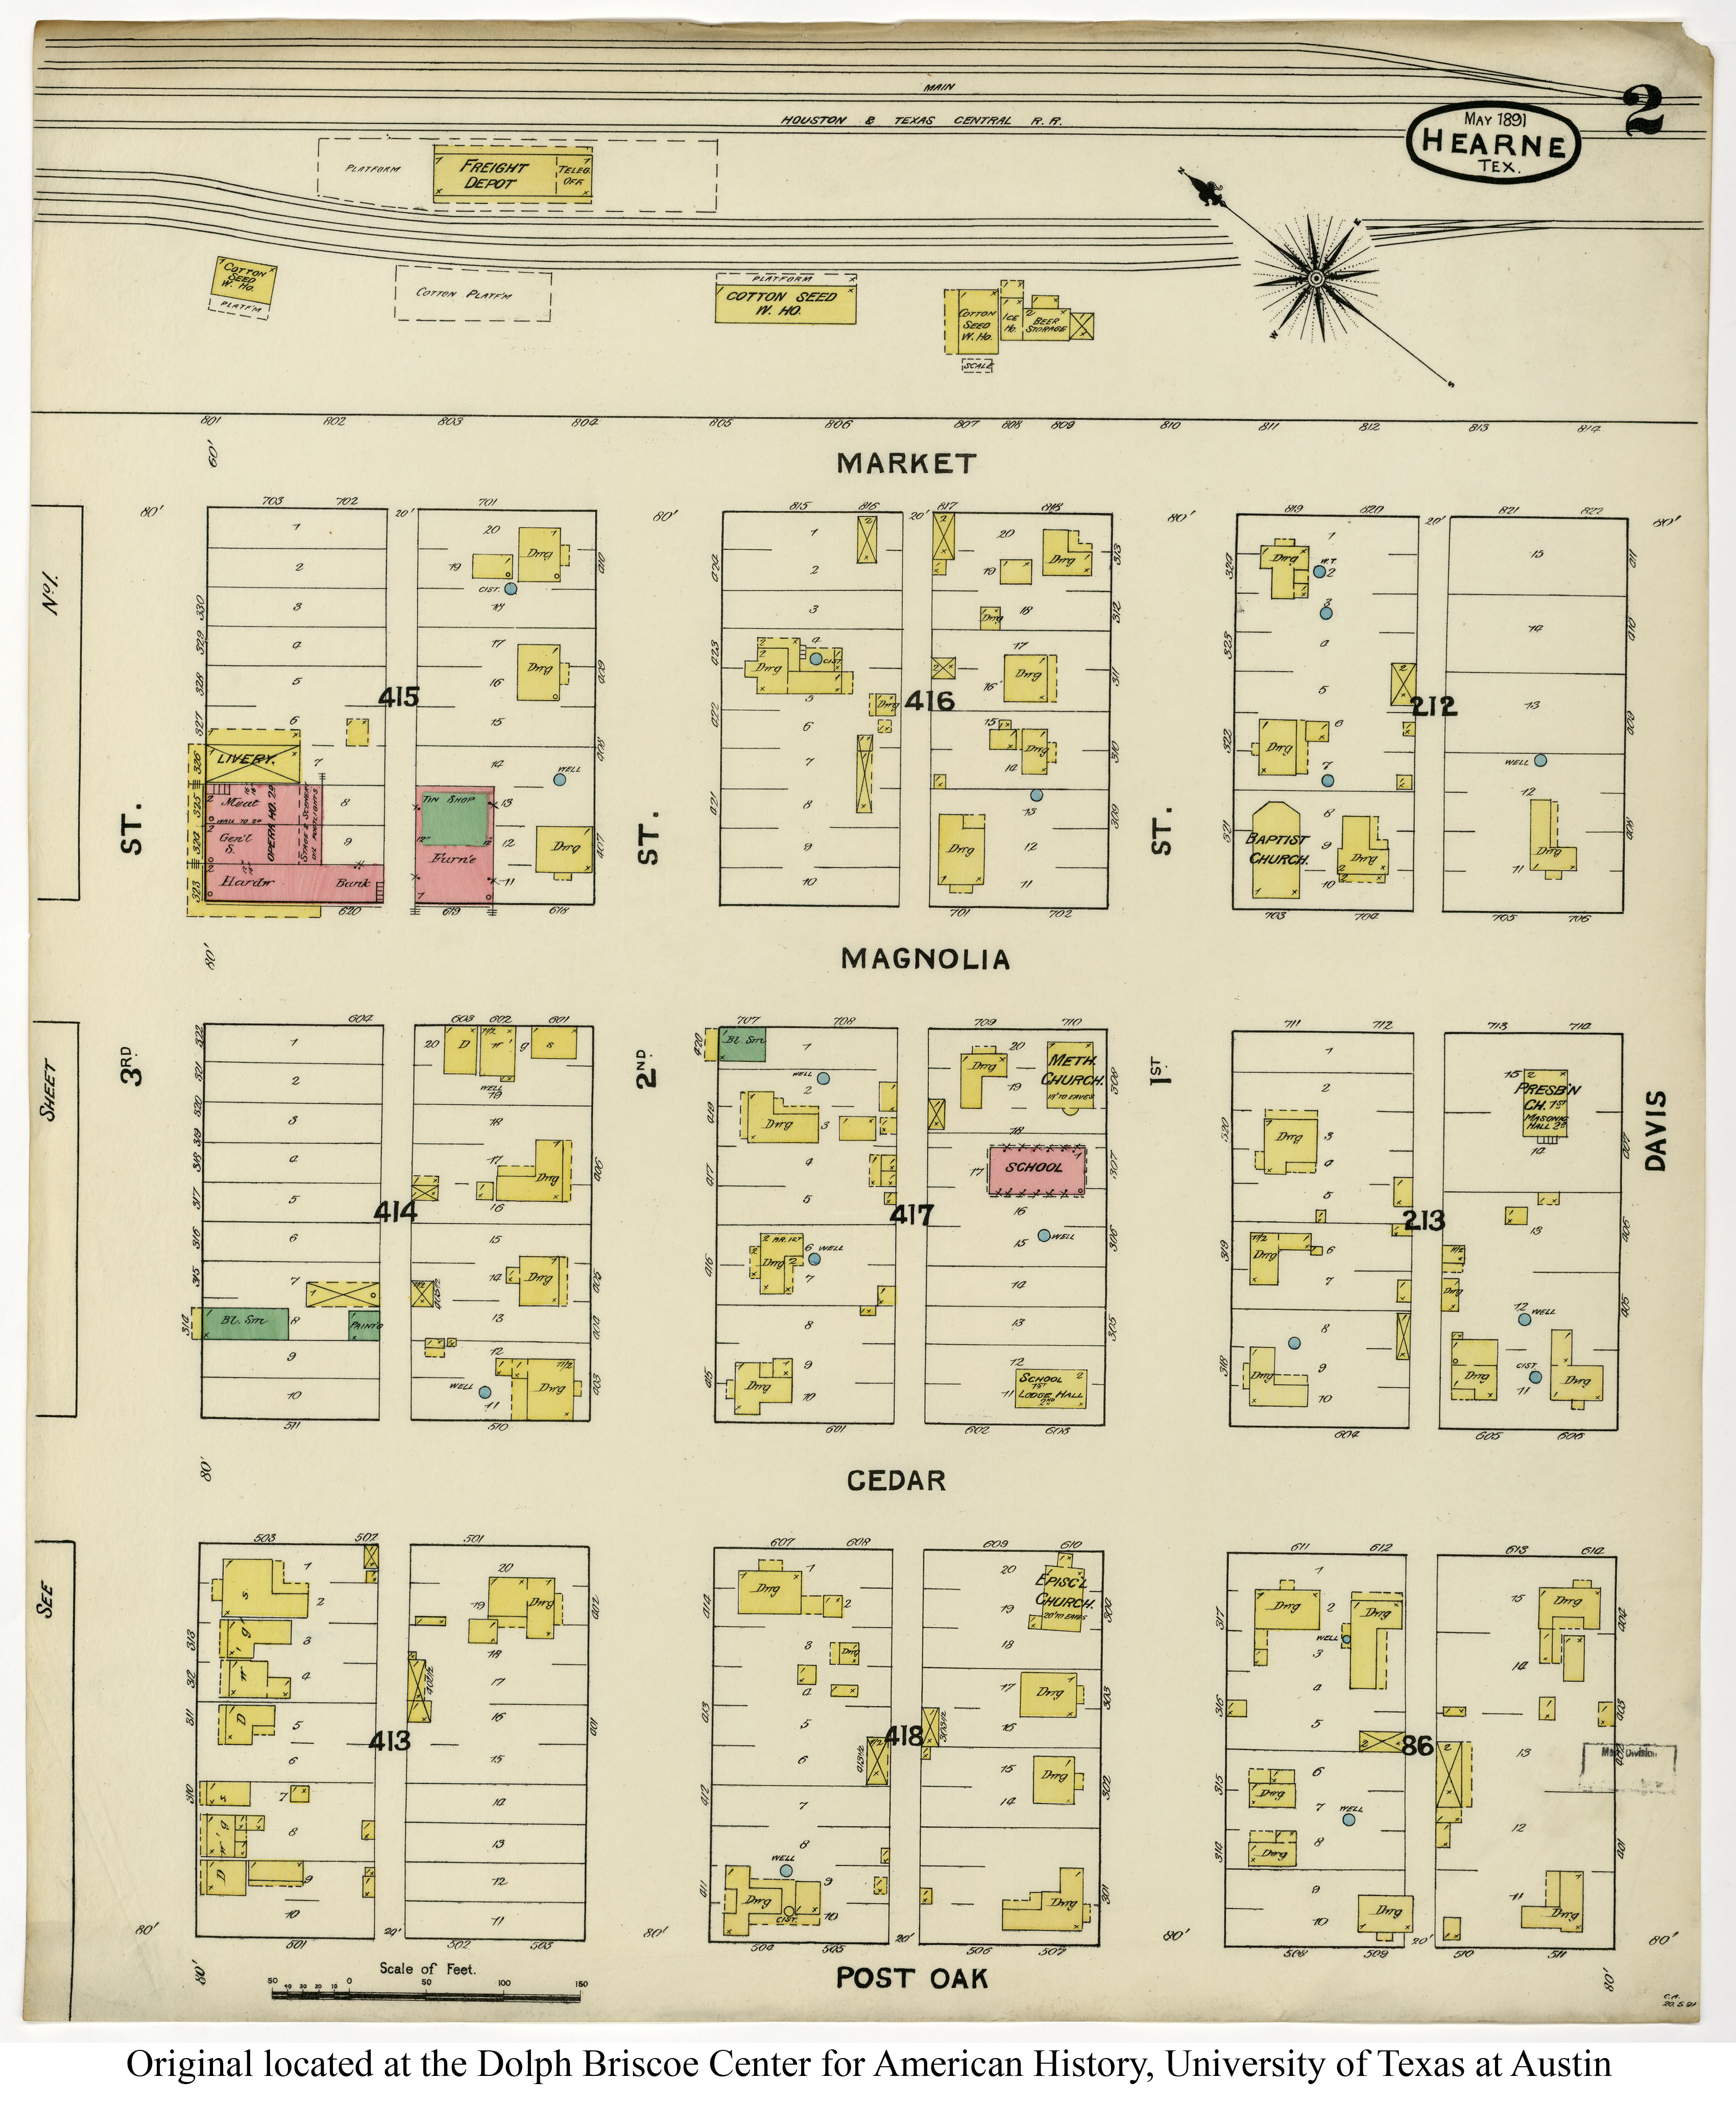 Sanborn Maps of Texas - Perry-Castañeda Map Collection - UT Library